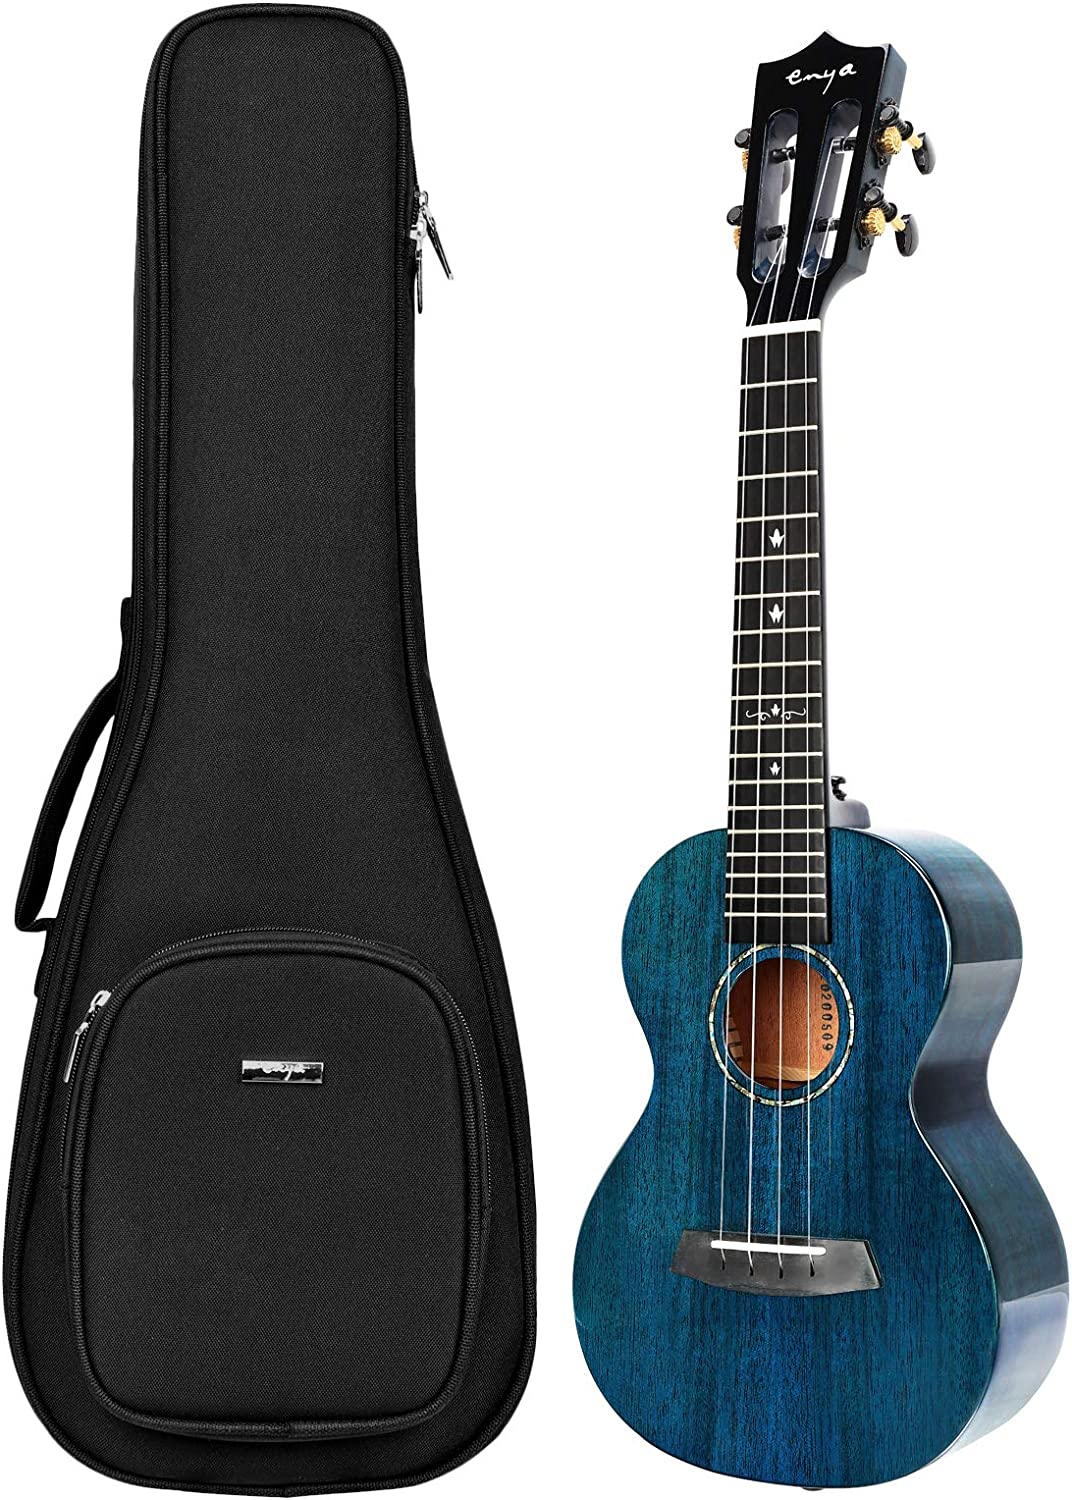 Enya EUT-MAD Tenor Ukulele Solid Gloss Mahogany 26 Inch Wiping Blue with High-end 15mm Padded Gig Bag